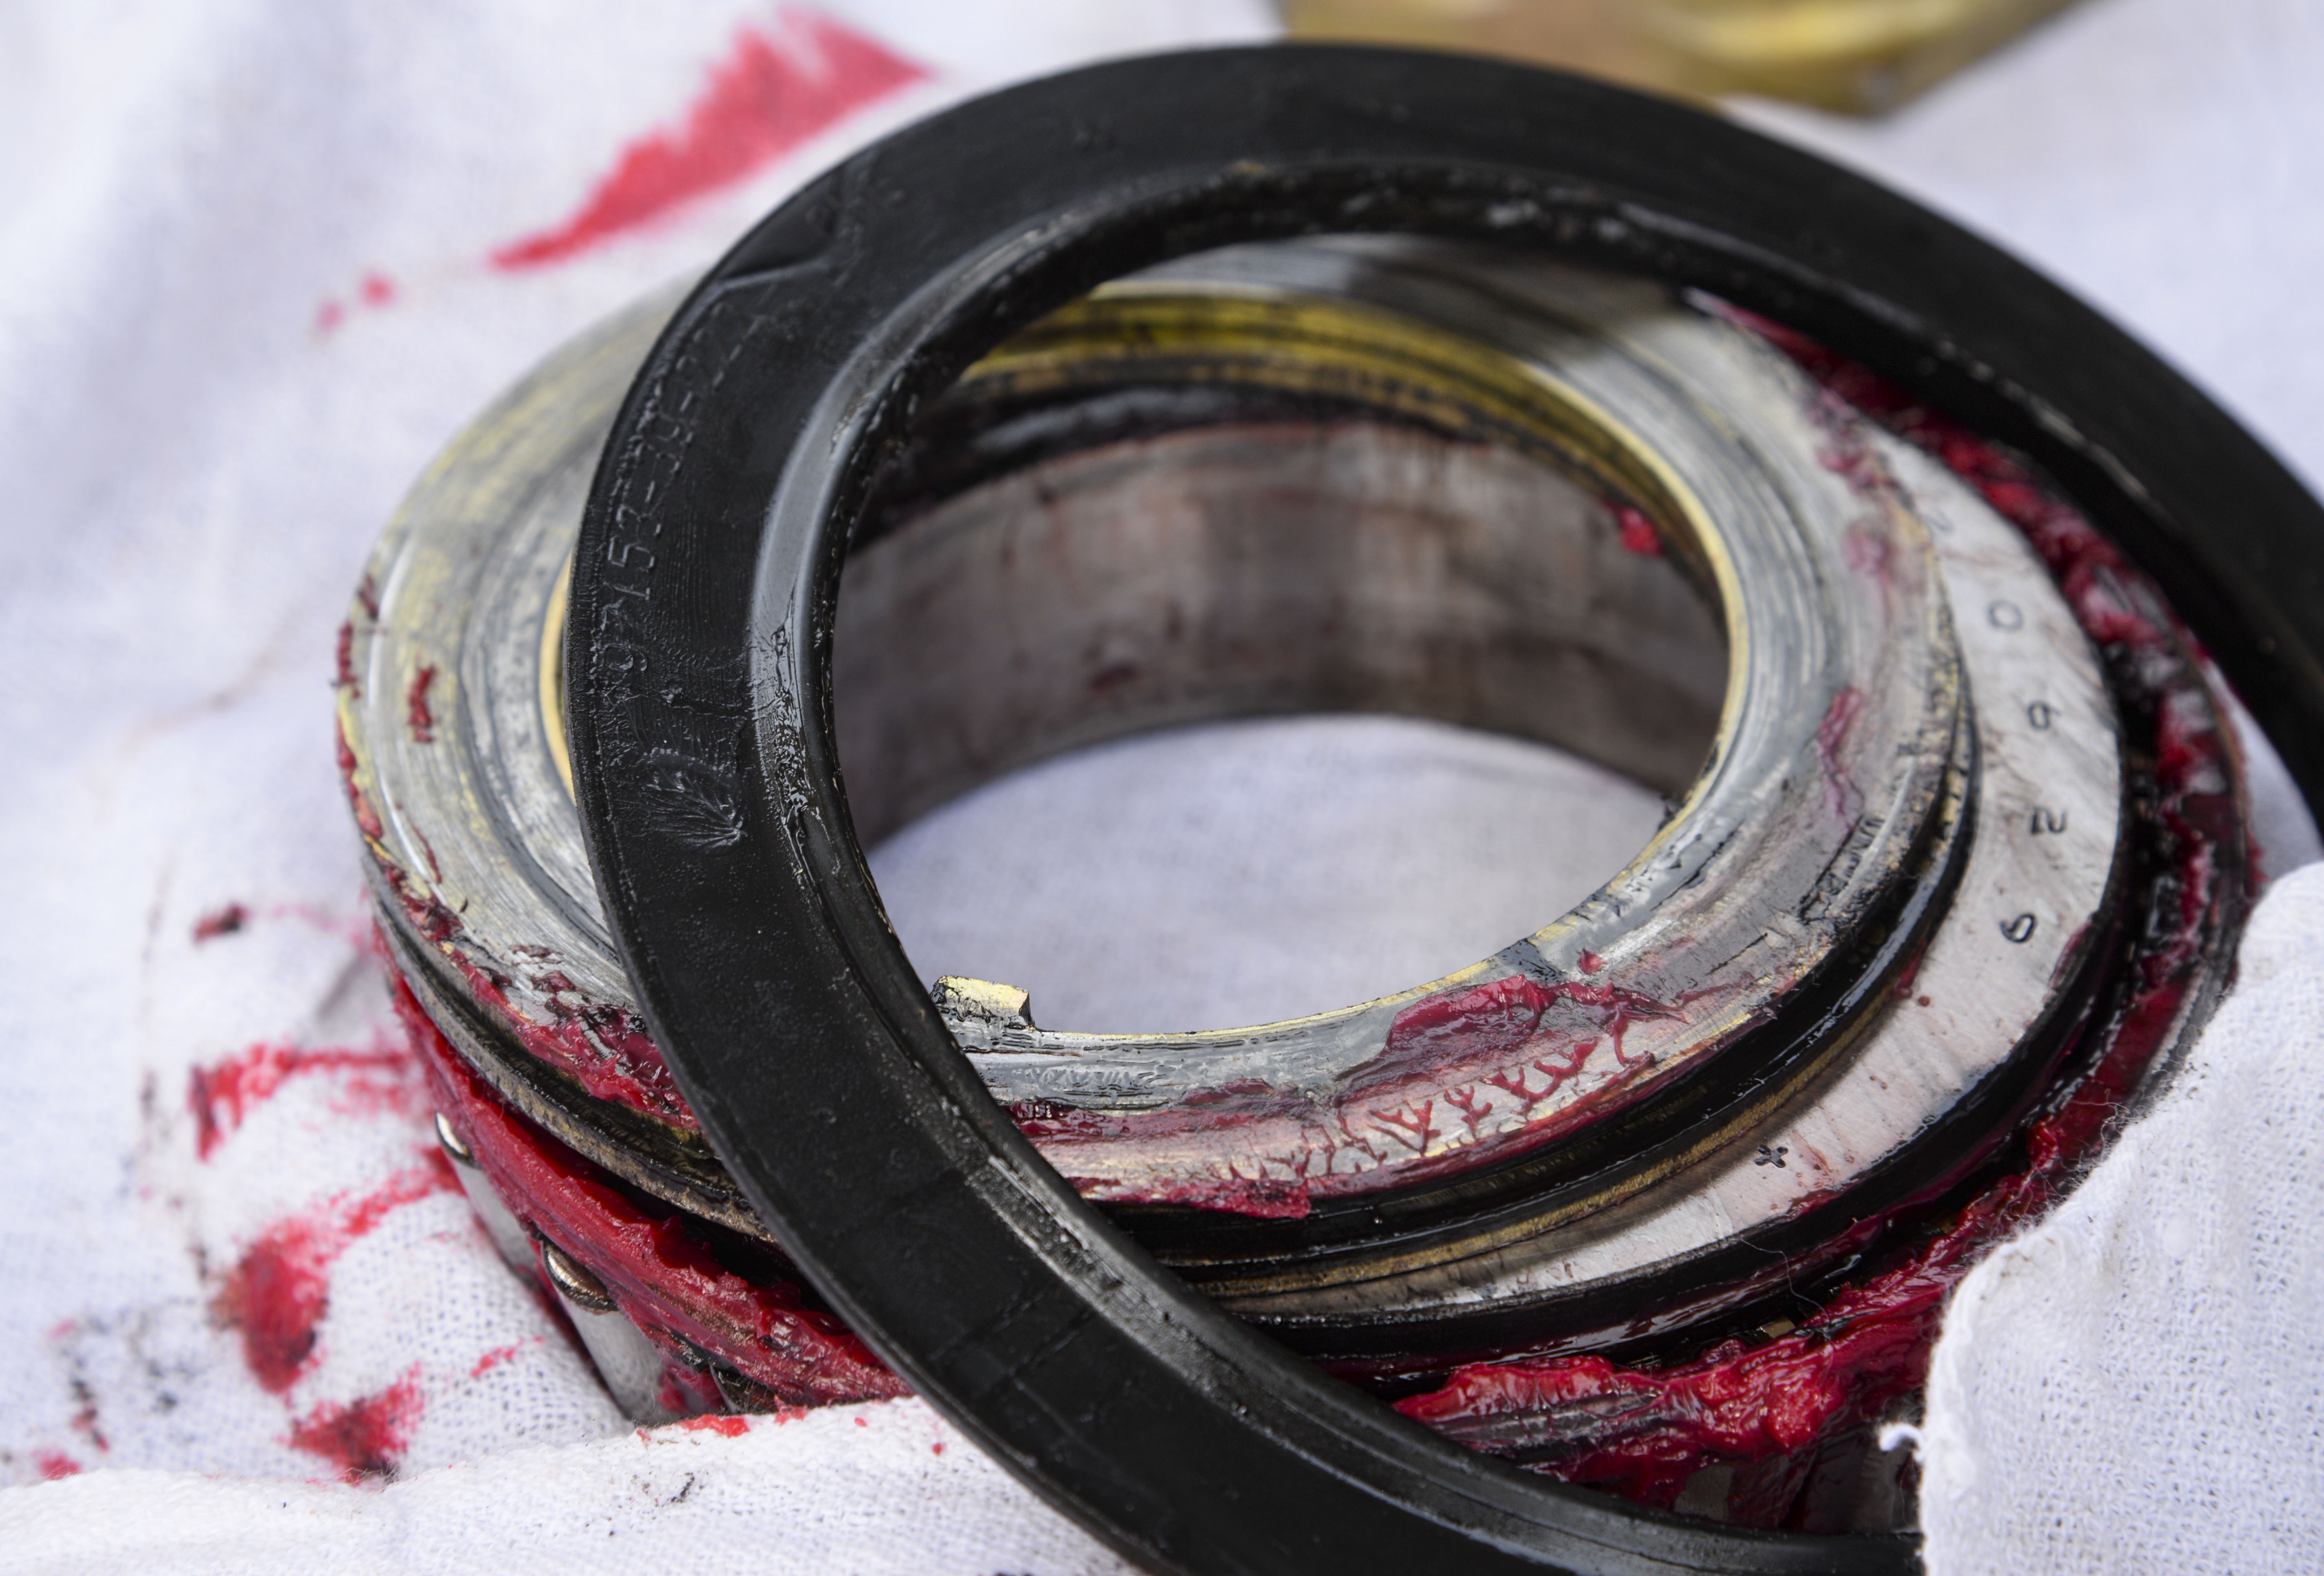 Bearings covered in red grease sit on a towel before being replaced on a C-130J Hercules during a tire change at Camp Lemonnier, Djibouti, July 18, 2016. The C-130J underwent routine maintenance to continue the mission of personnel recovery and protect and defend United States interests in Eastern Africa. (U.S. Air Force photo by Staff Sgt. Benjamin Raughton)